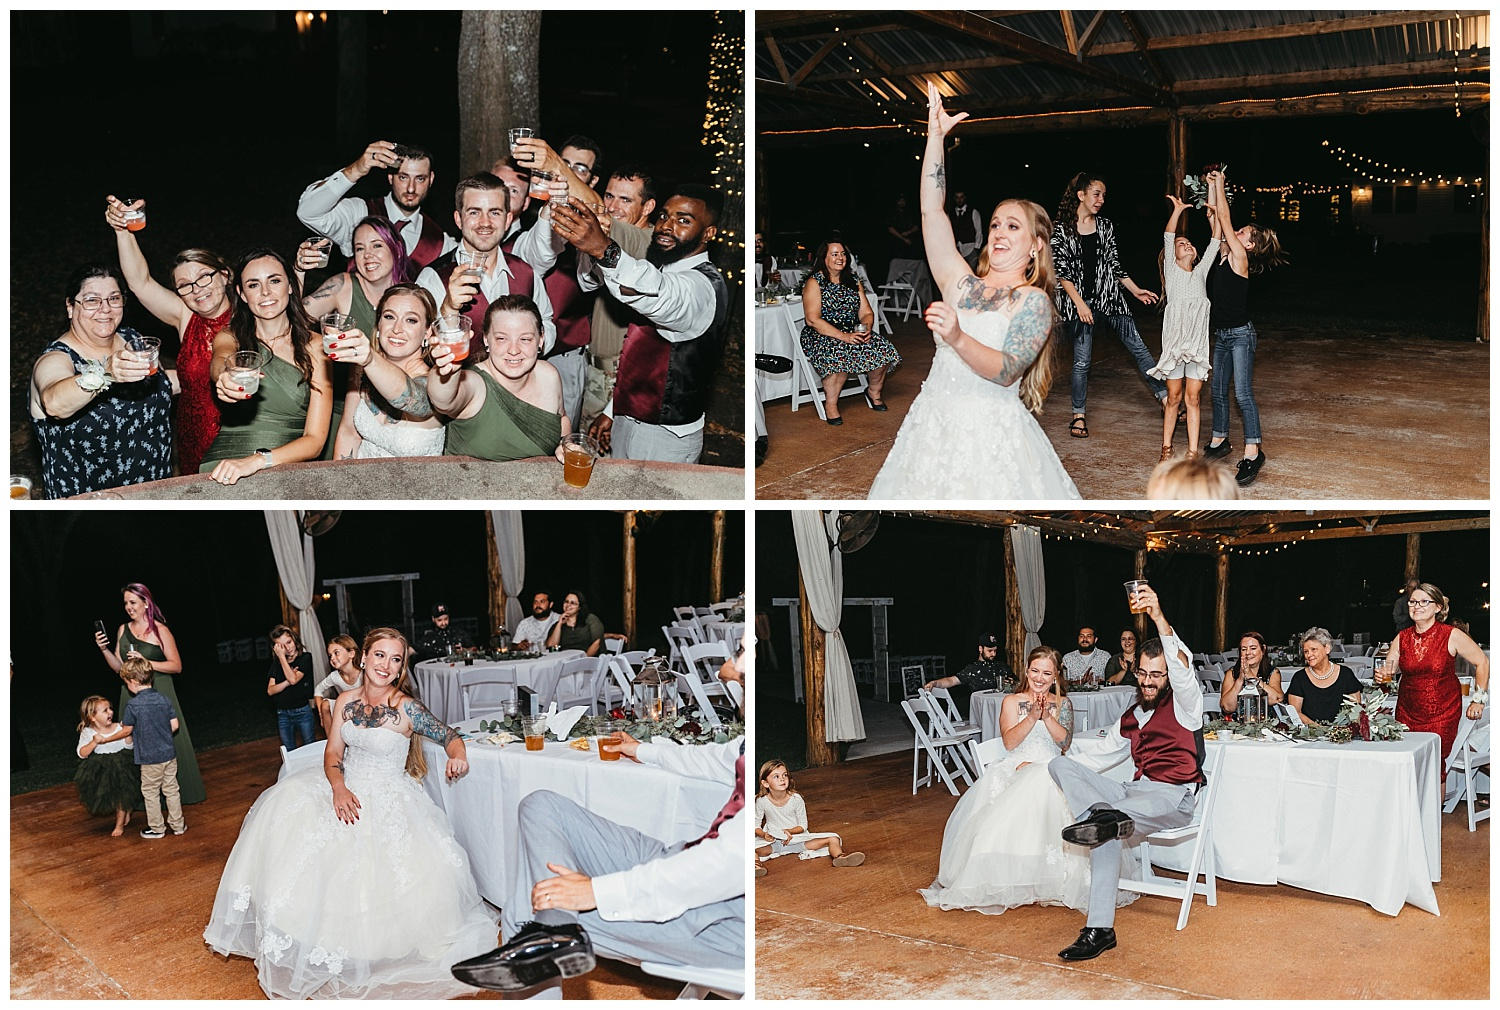 Bouquet toss and toast at Mikey and Amber's wedding reception.